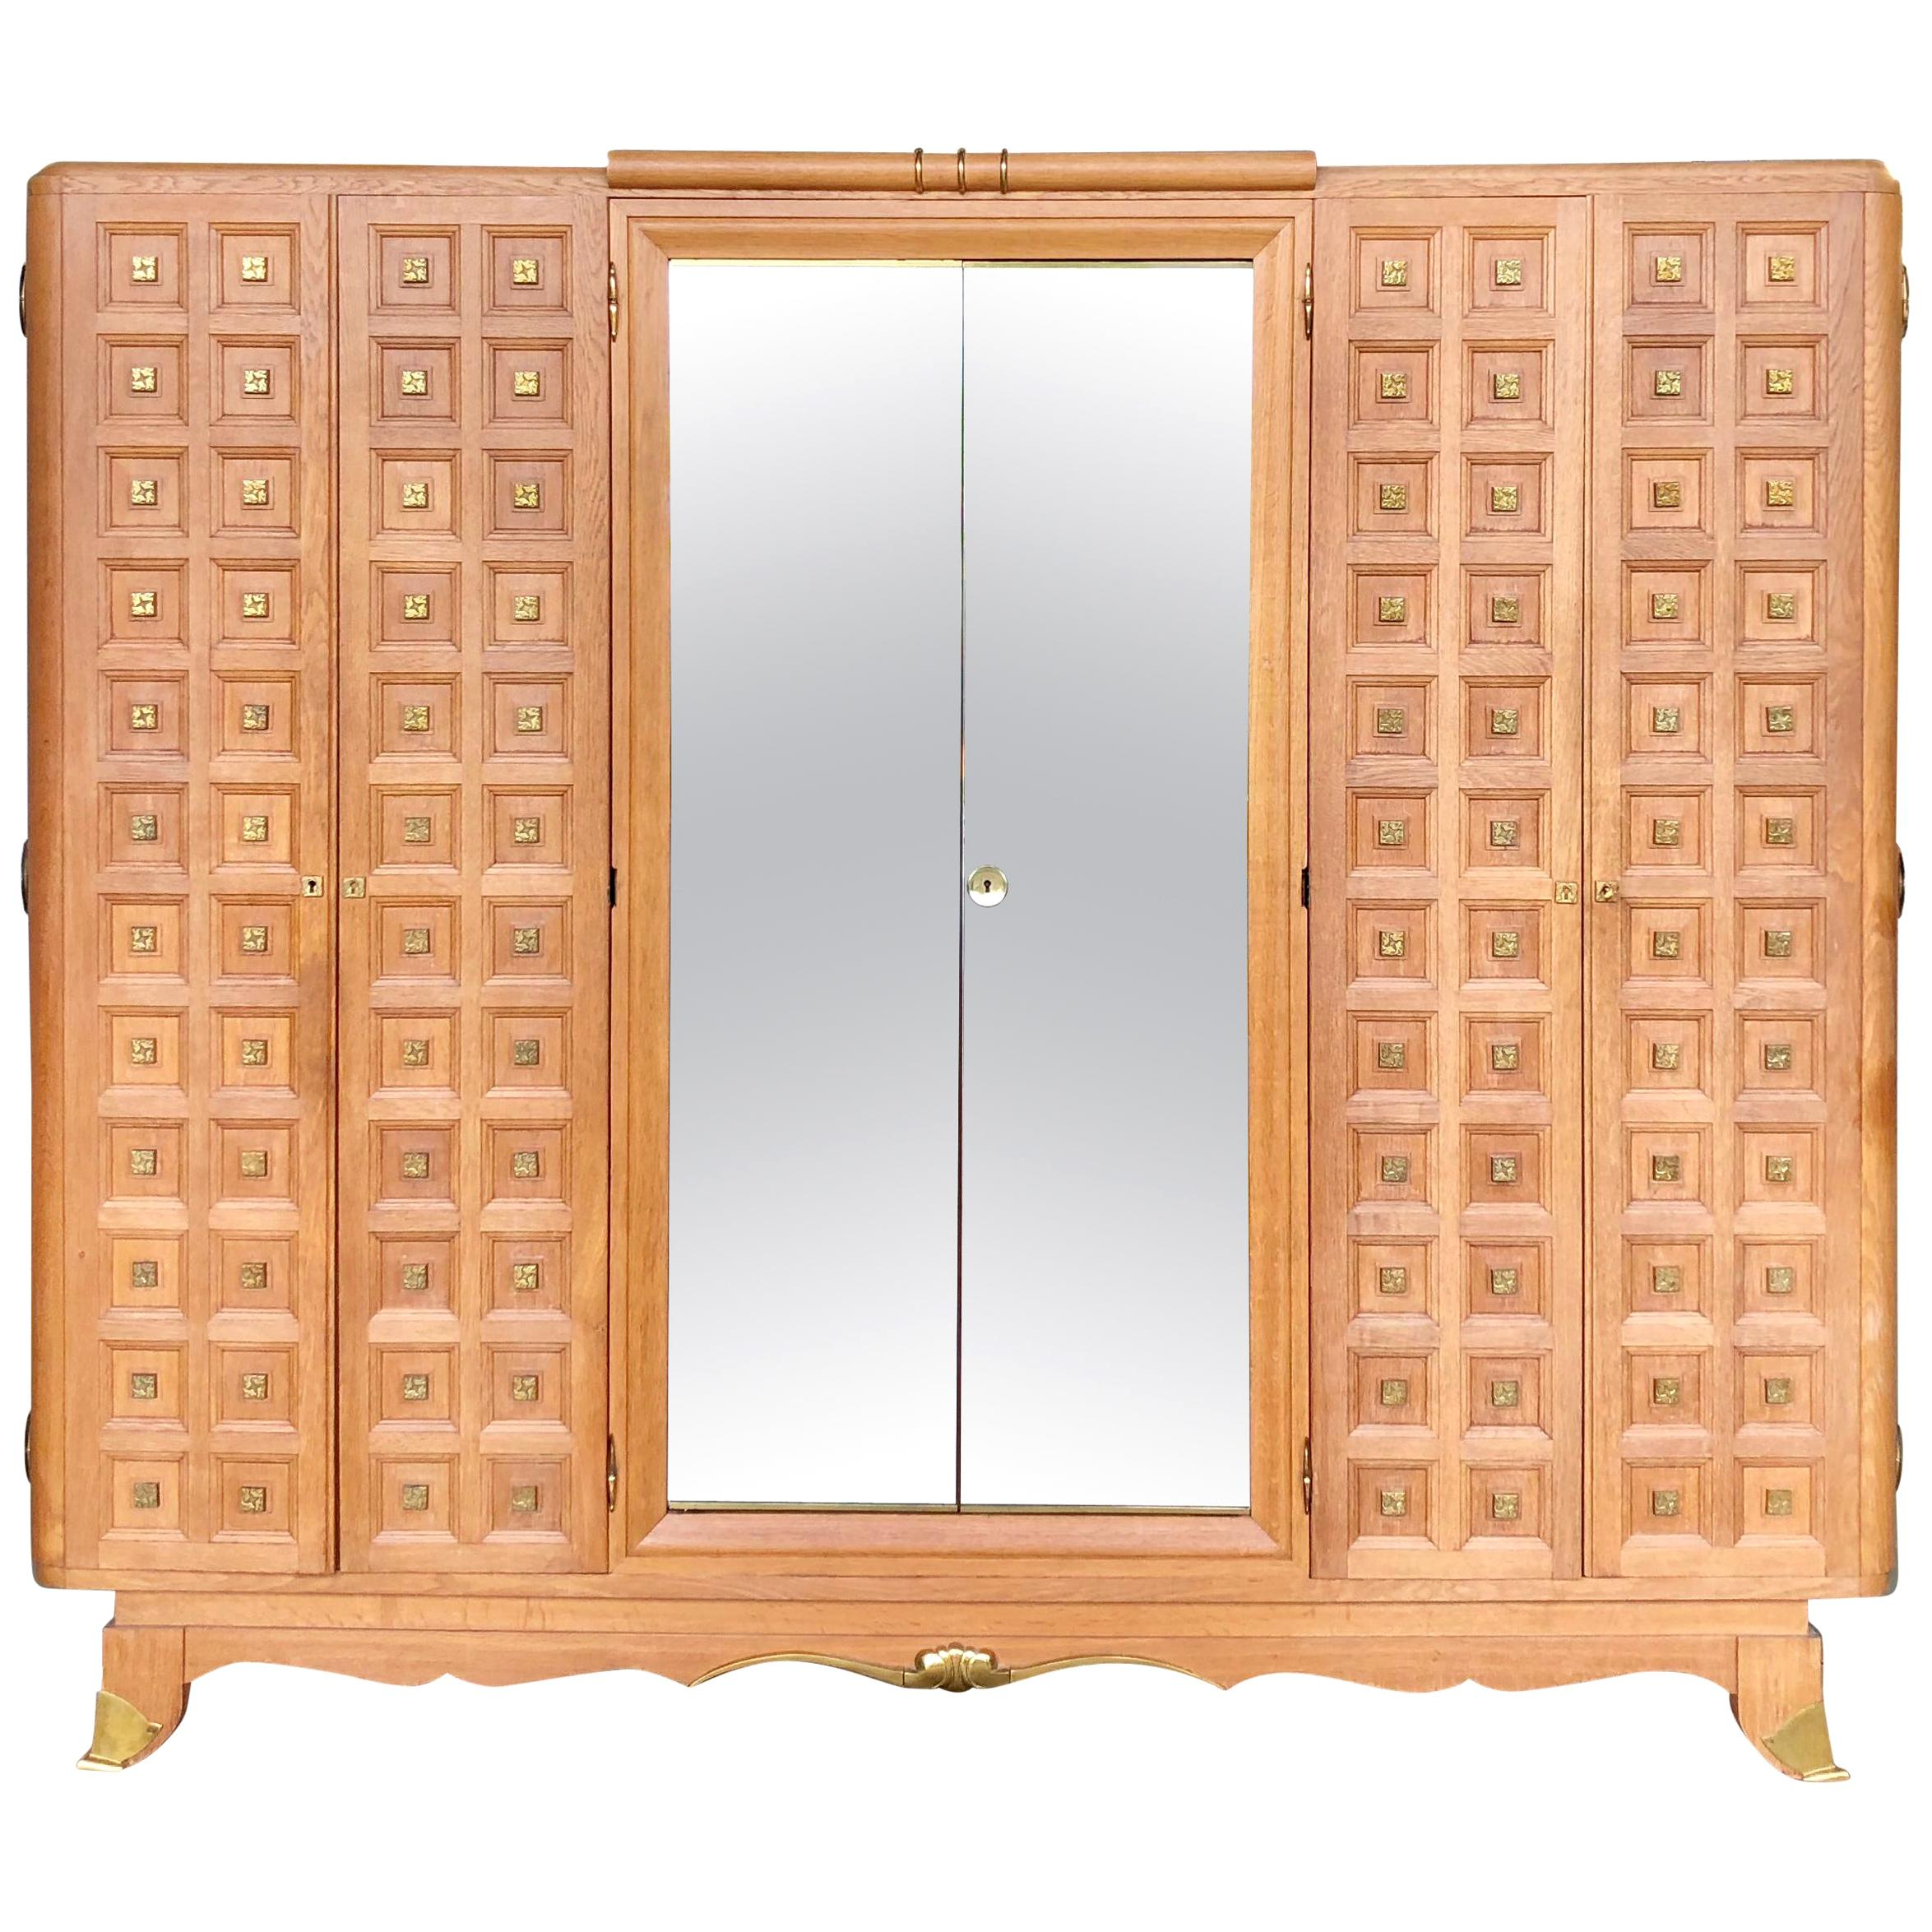 Rare Large Mirrored French Art Deco Wardrobe in Solid Oak and Brass, 1940s